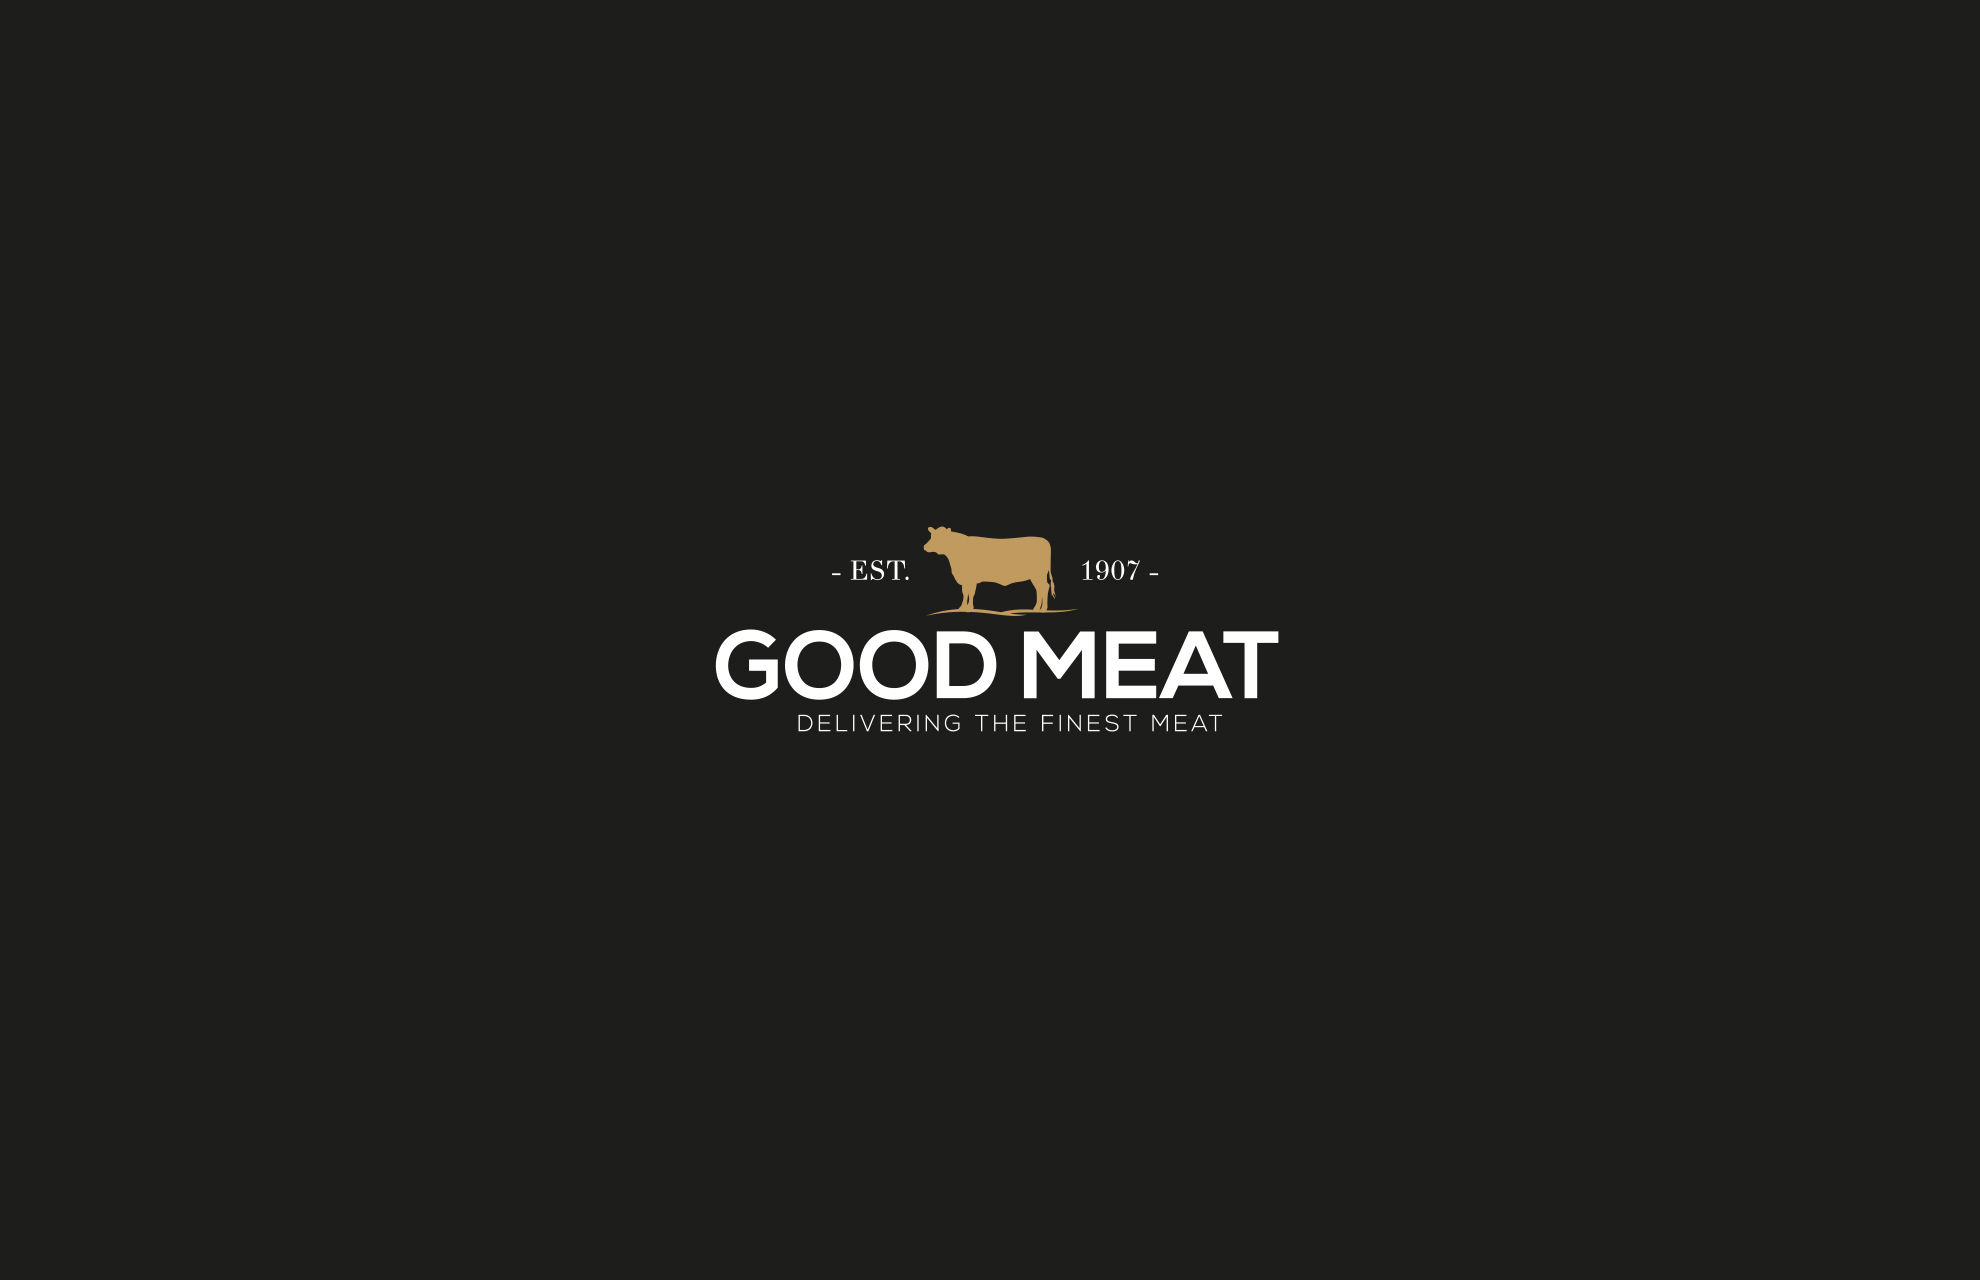 GoodMeat